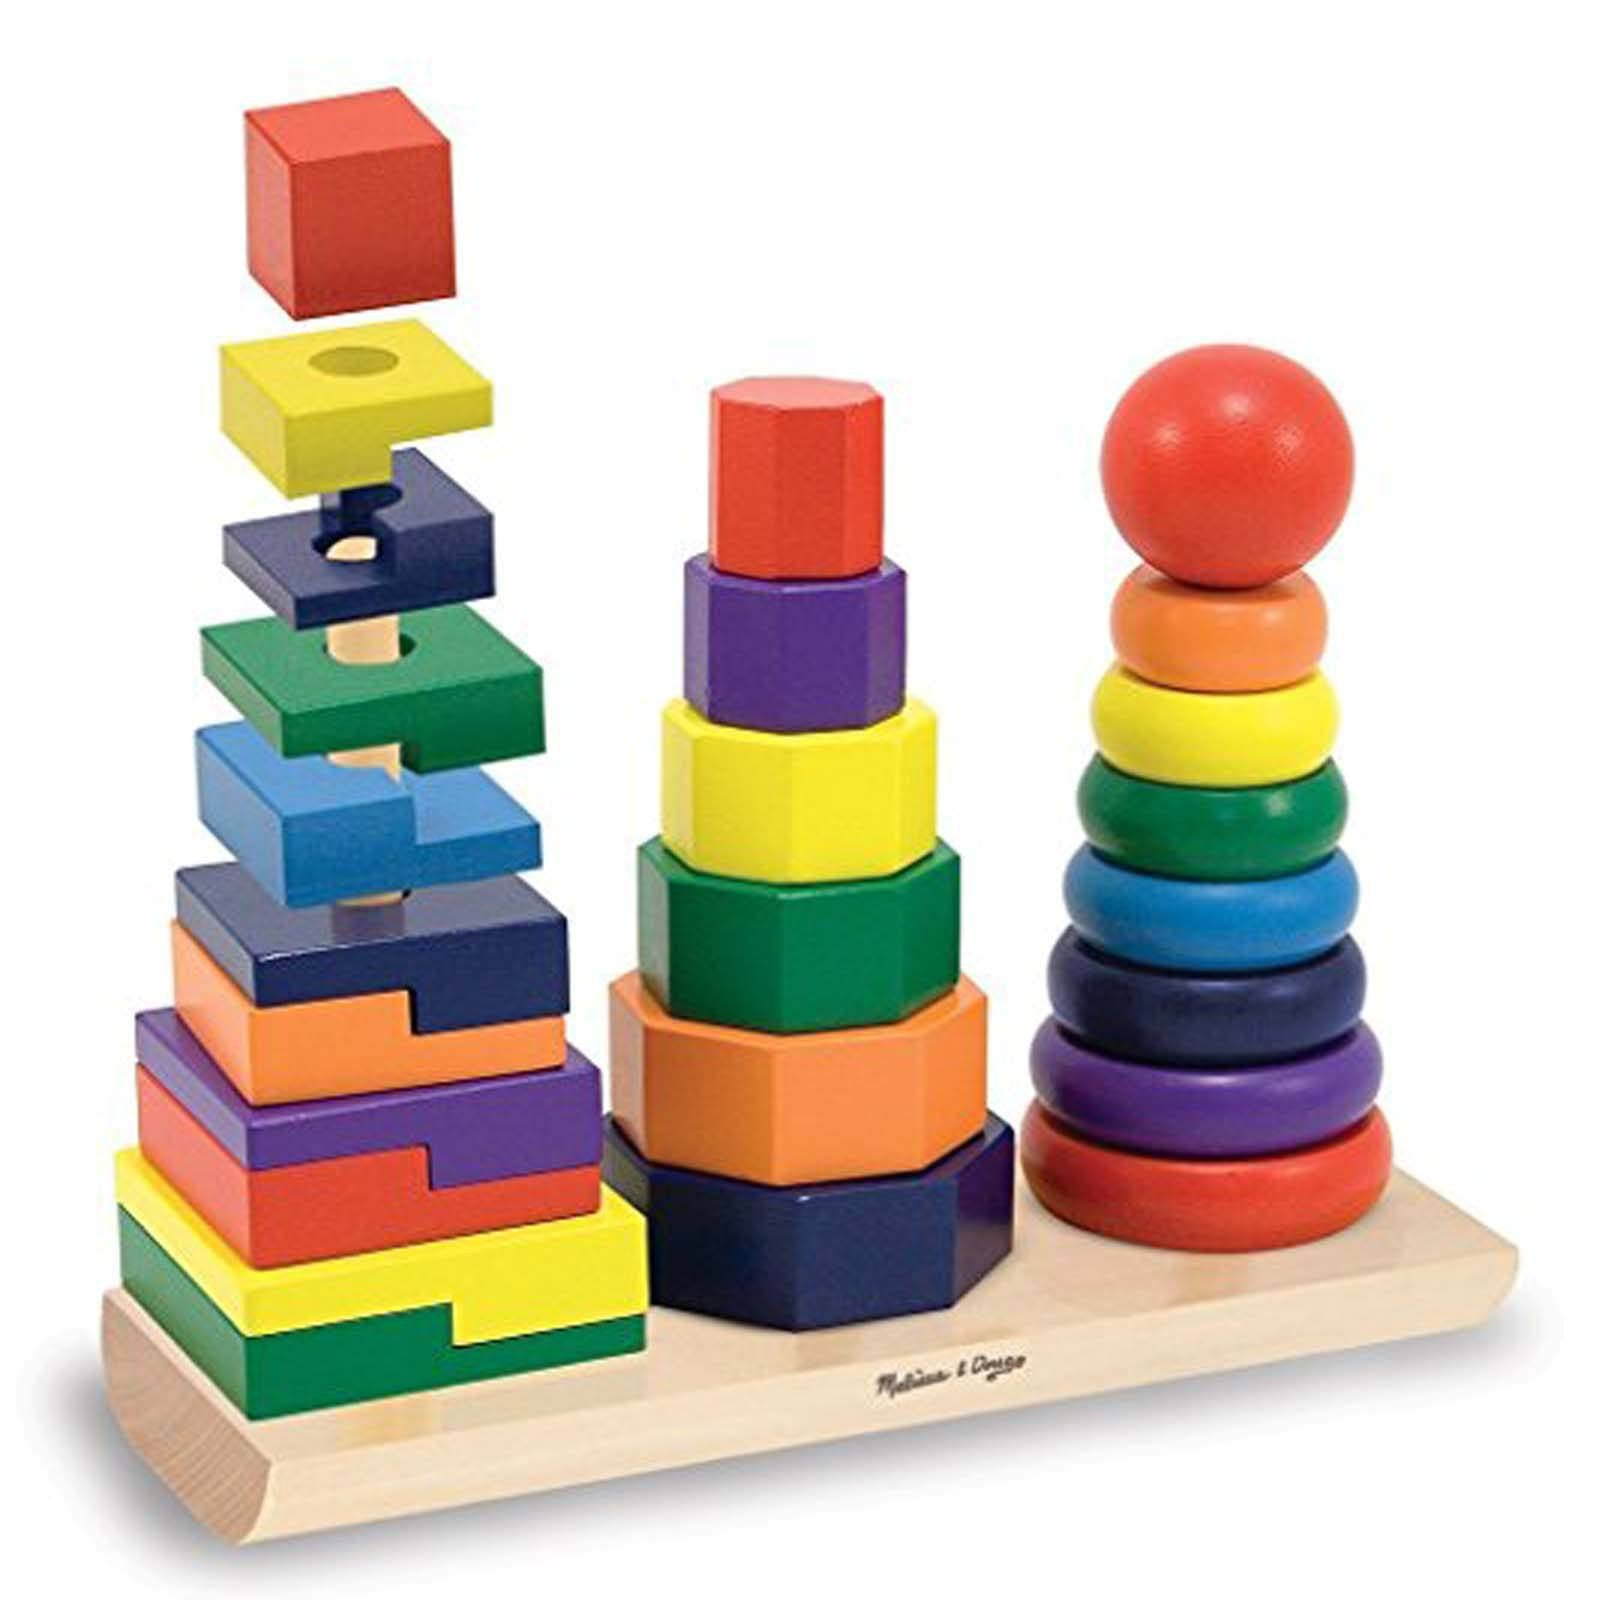 Geometric Stacking Blocks Toy Kid s Wooden Blocks Classic